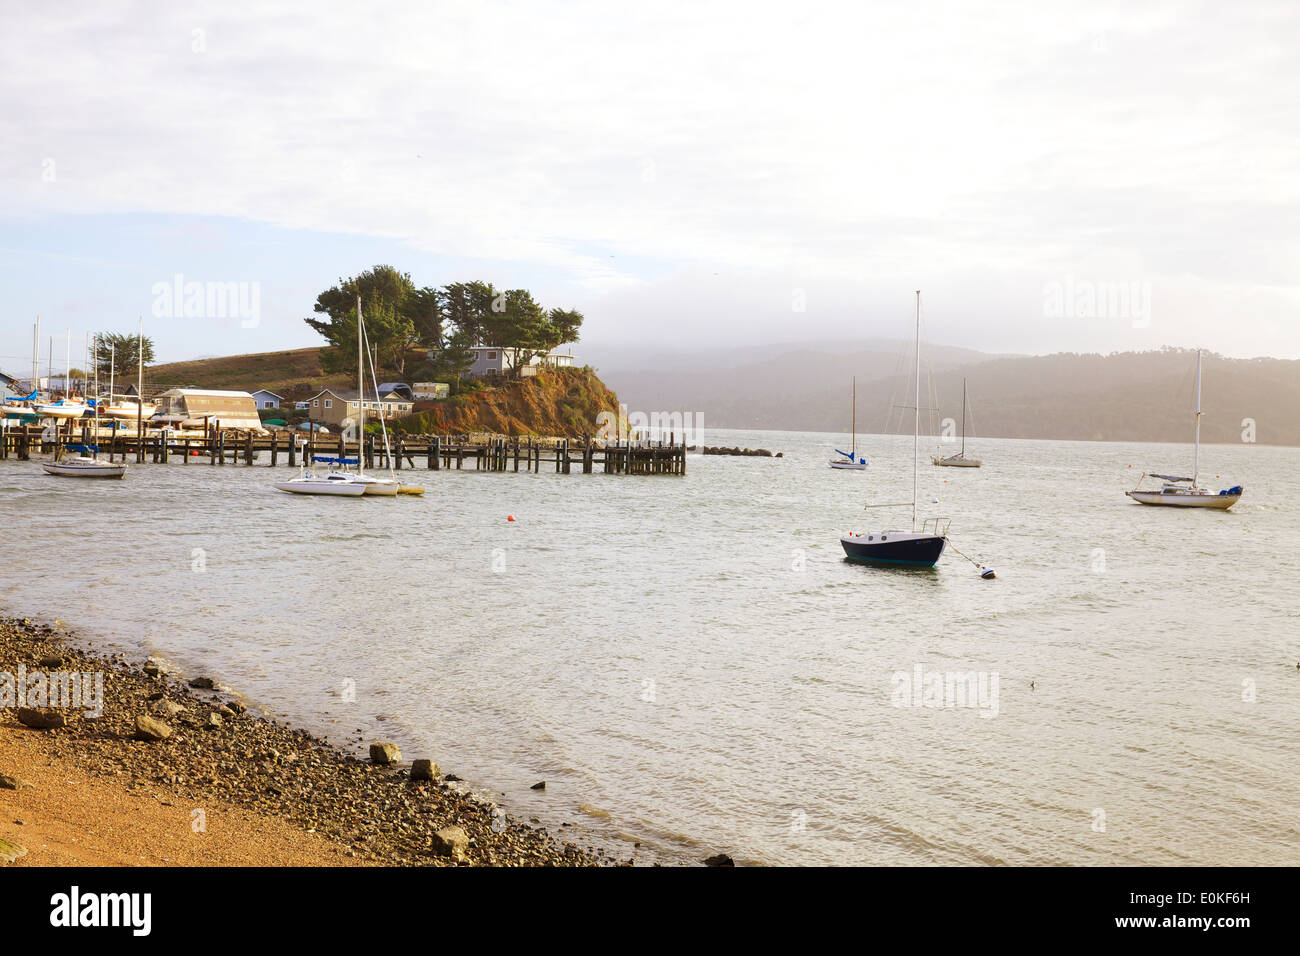 Sailboats anchored on Tomales Bay in Marshall, California. - Stock Image